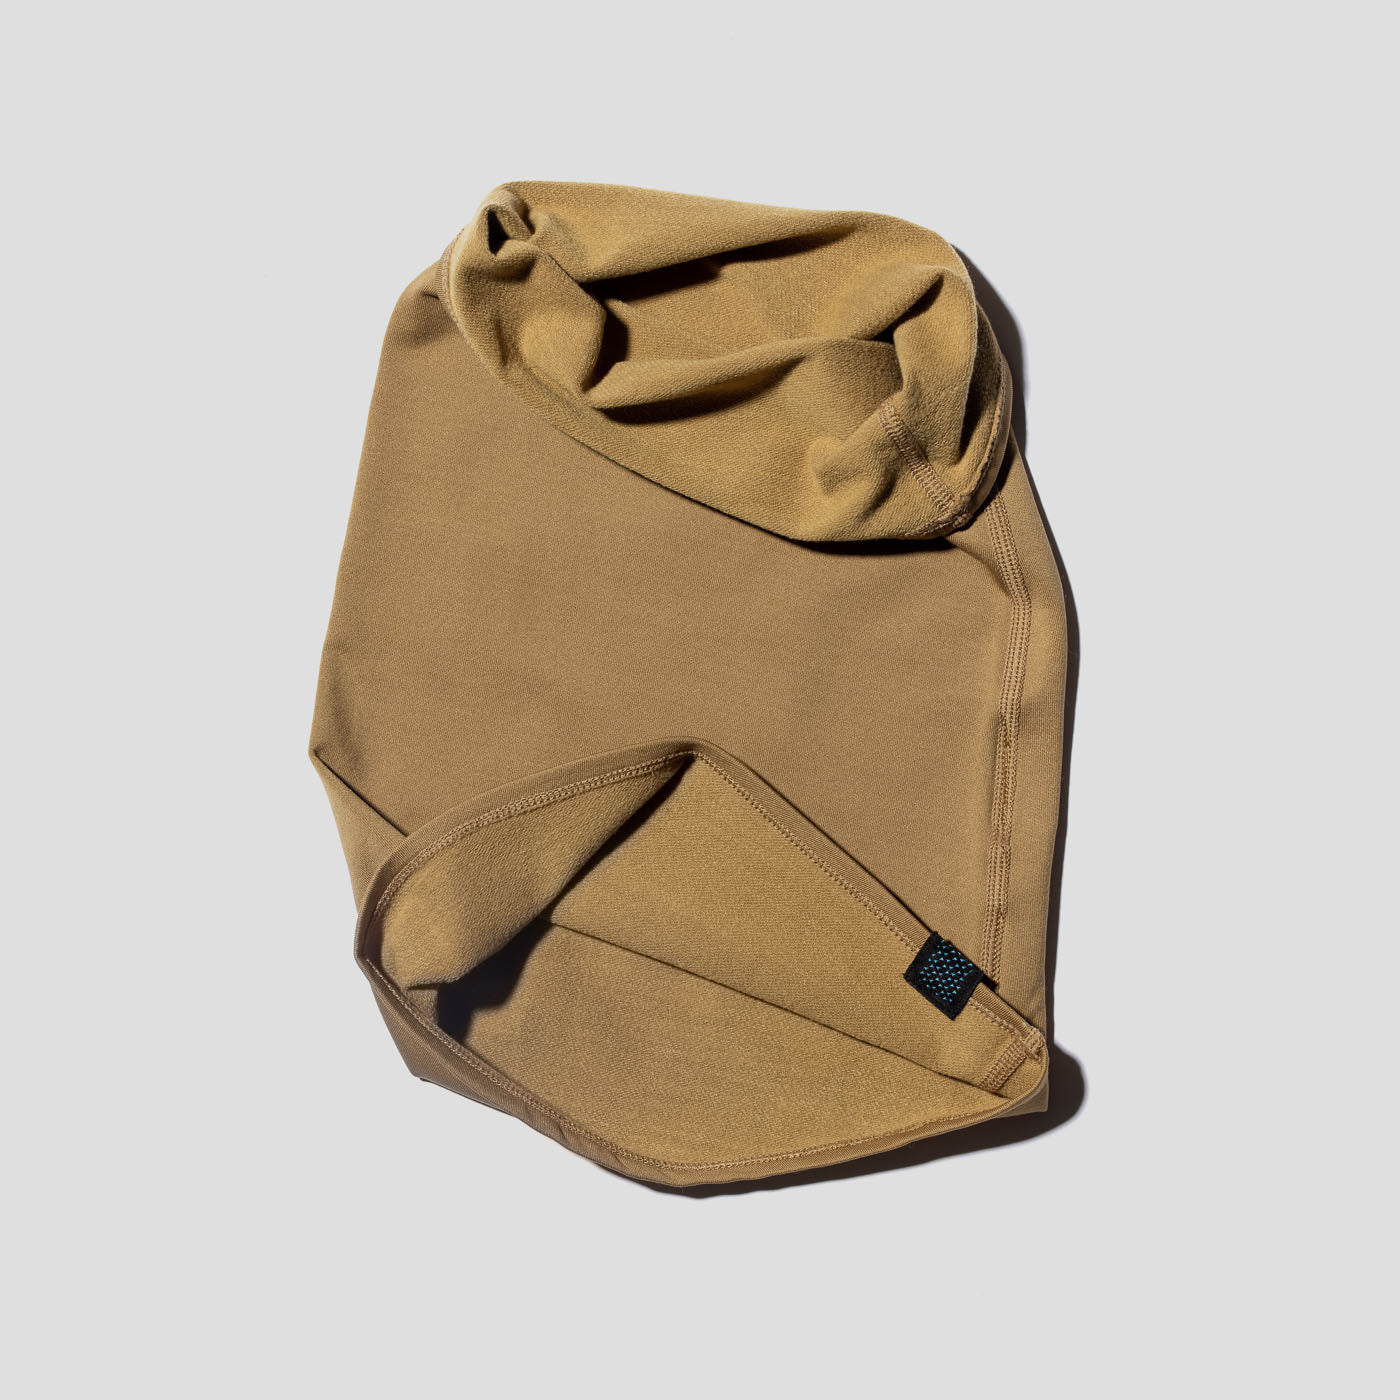 Neck Warmer - Coyote (Small/Medium)